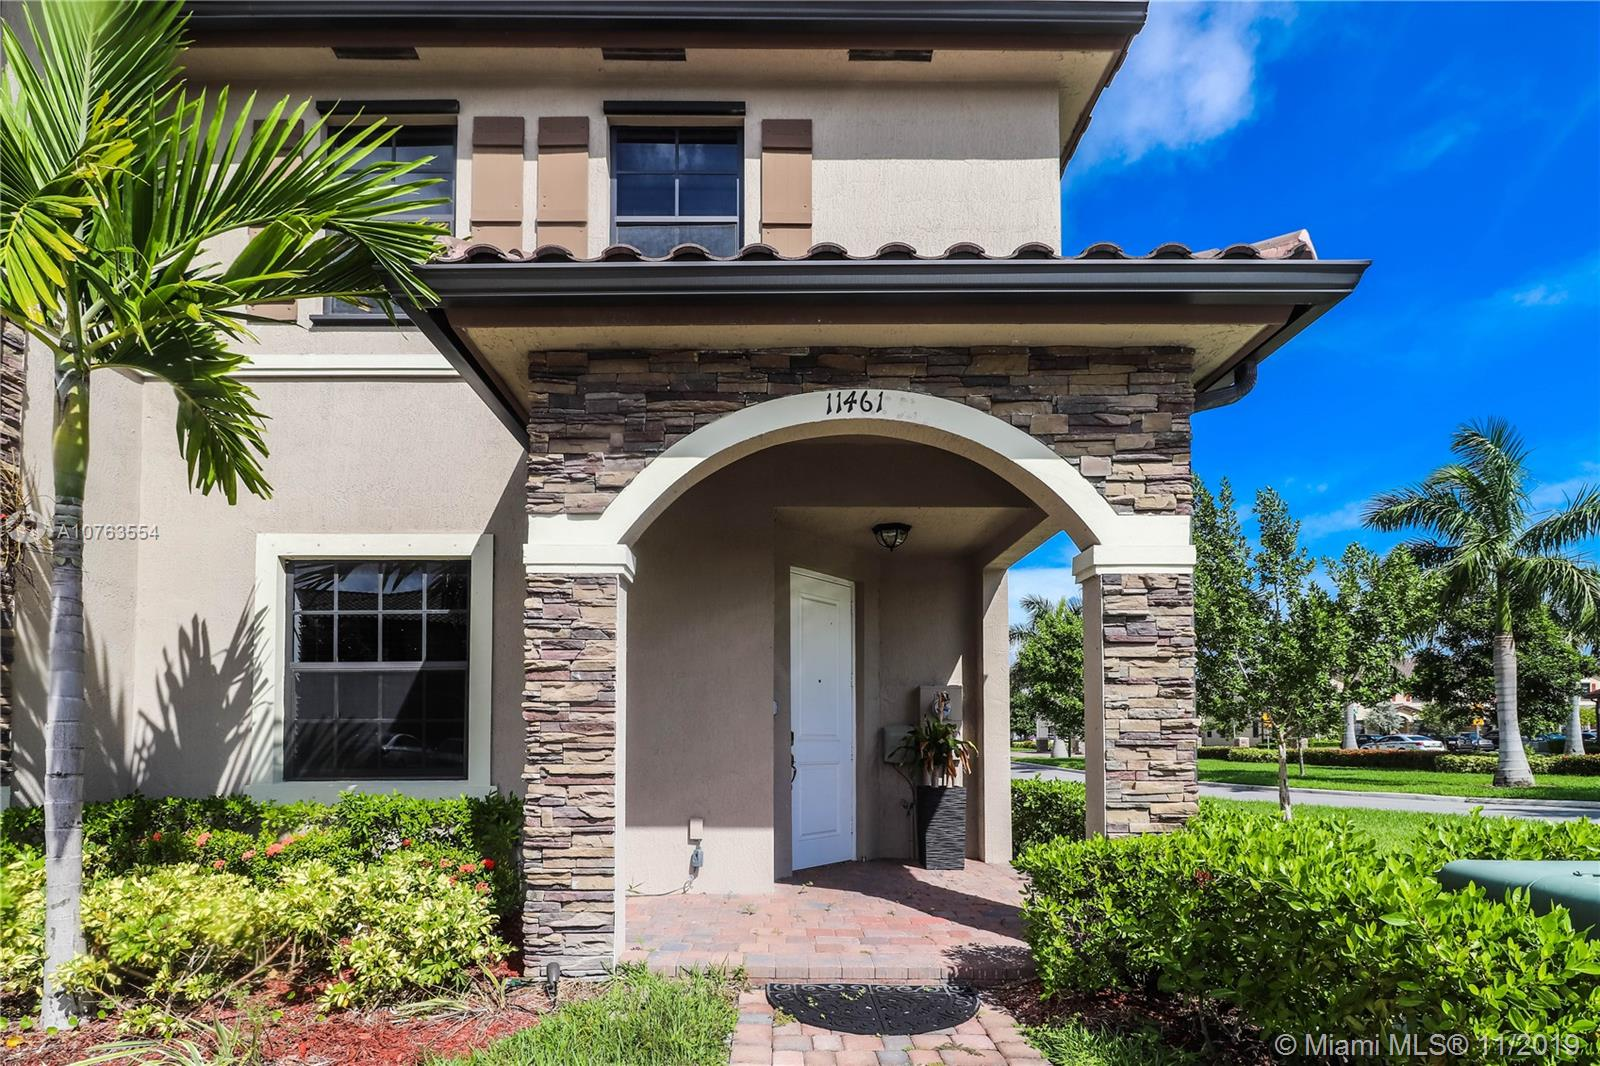 11461 SW 250th ST, Homestead, FL 33032 - Homestead, FL real estate listing